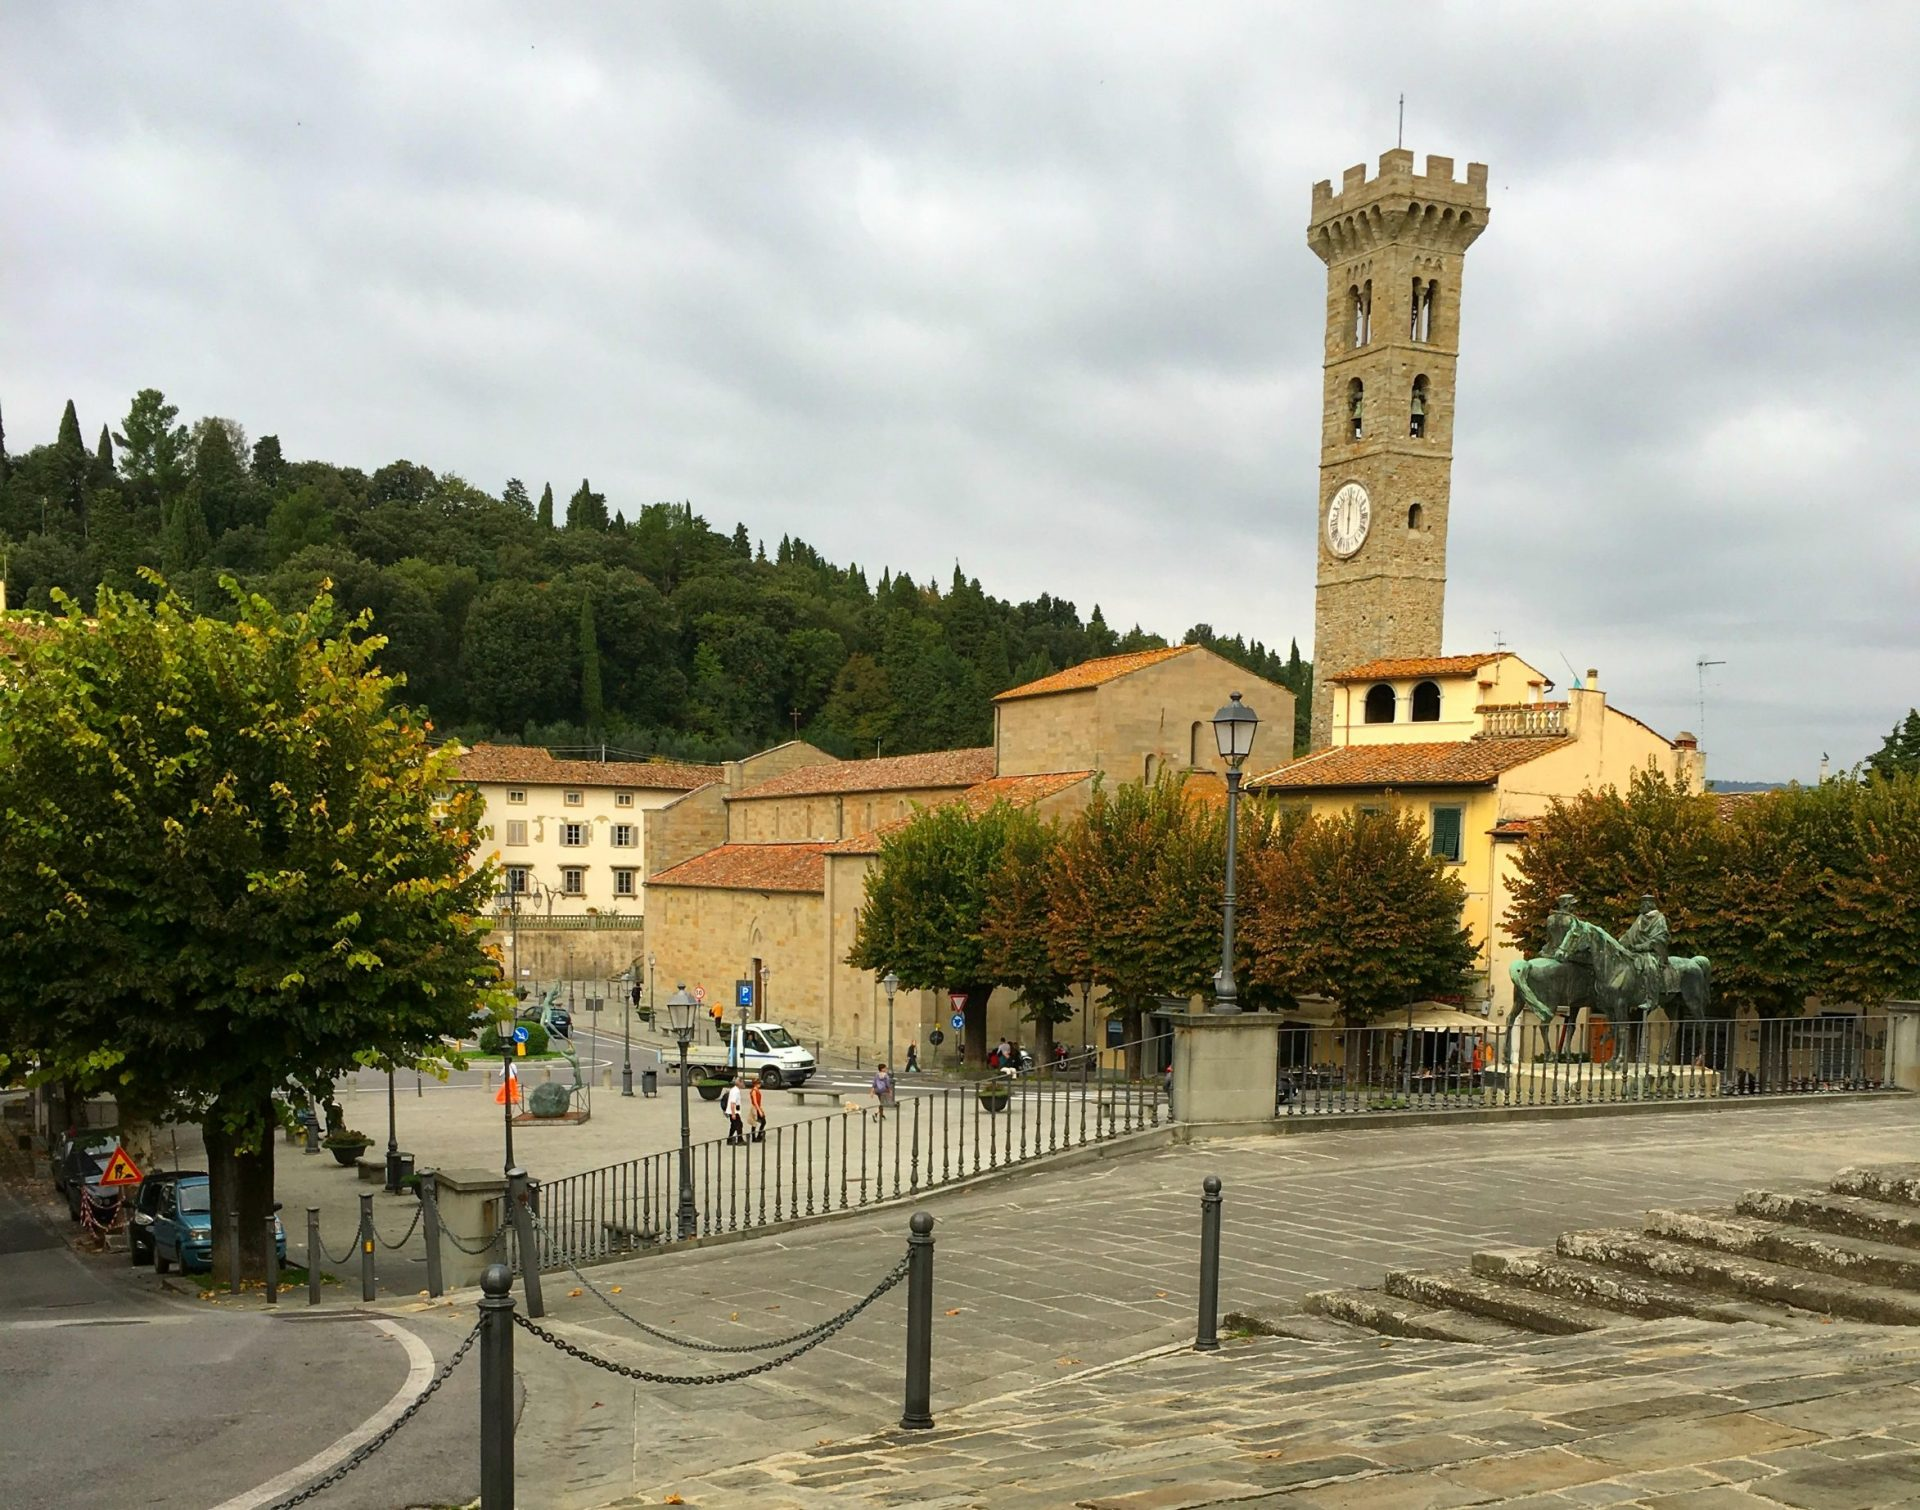 Piazza Mino da Fiesole trailhead for hikes near Florence